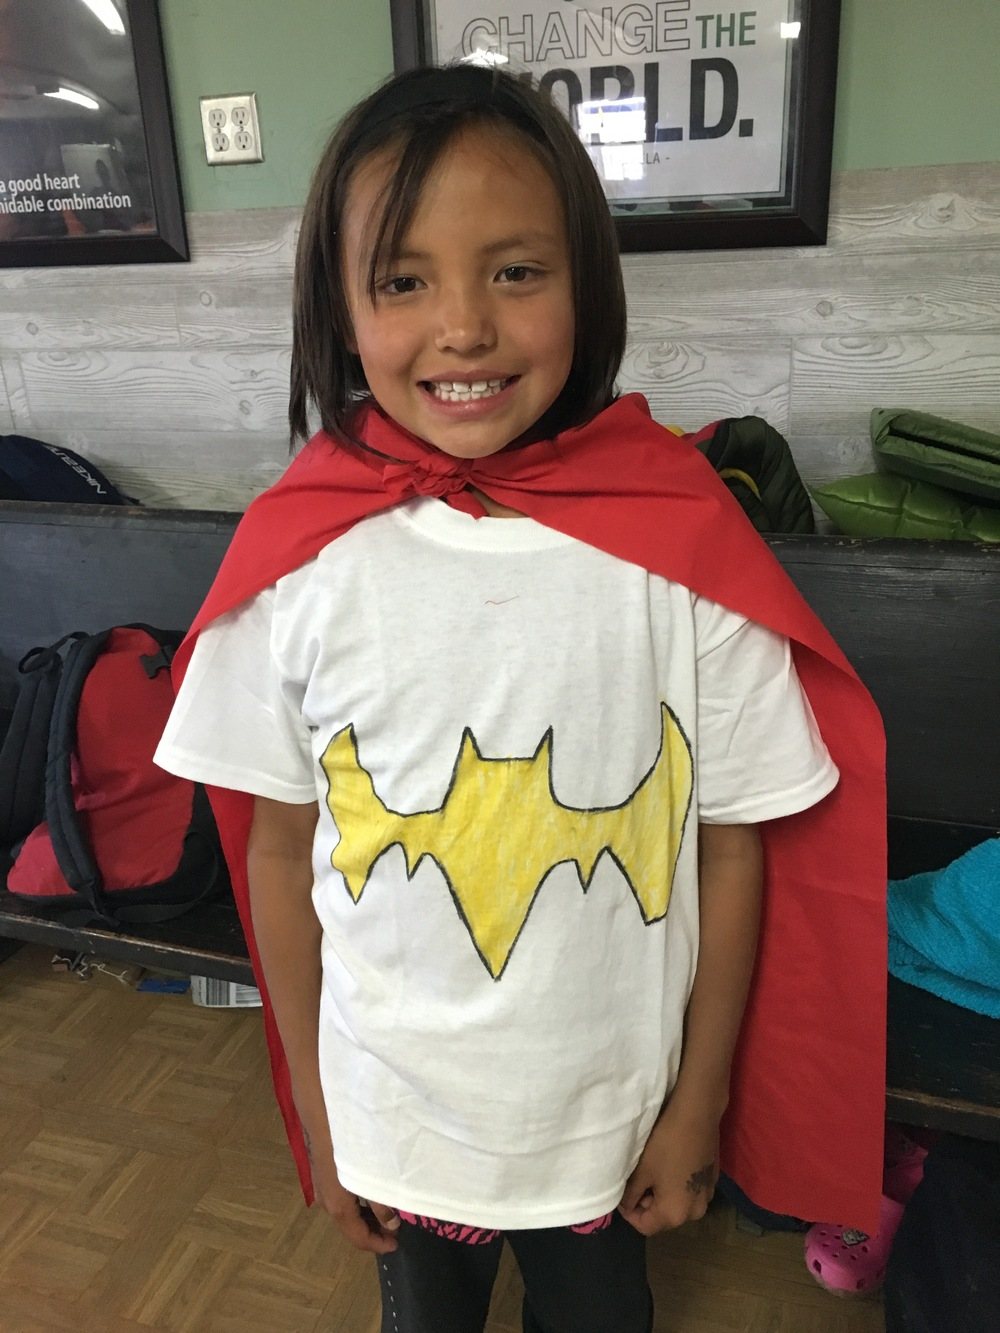 Superhero Day at camp, complete with mighty t-shirts and capes!